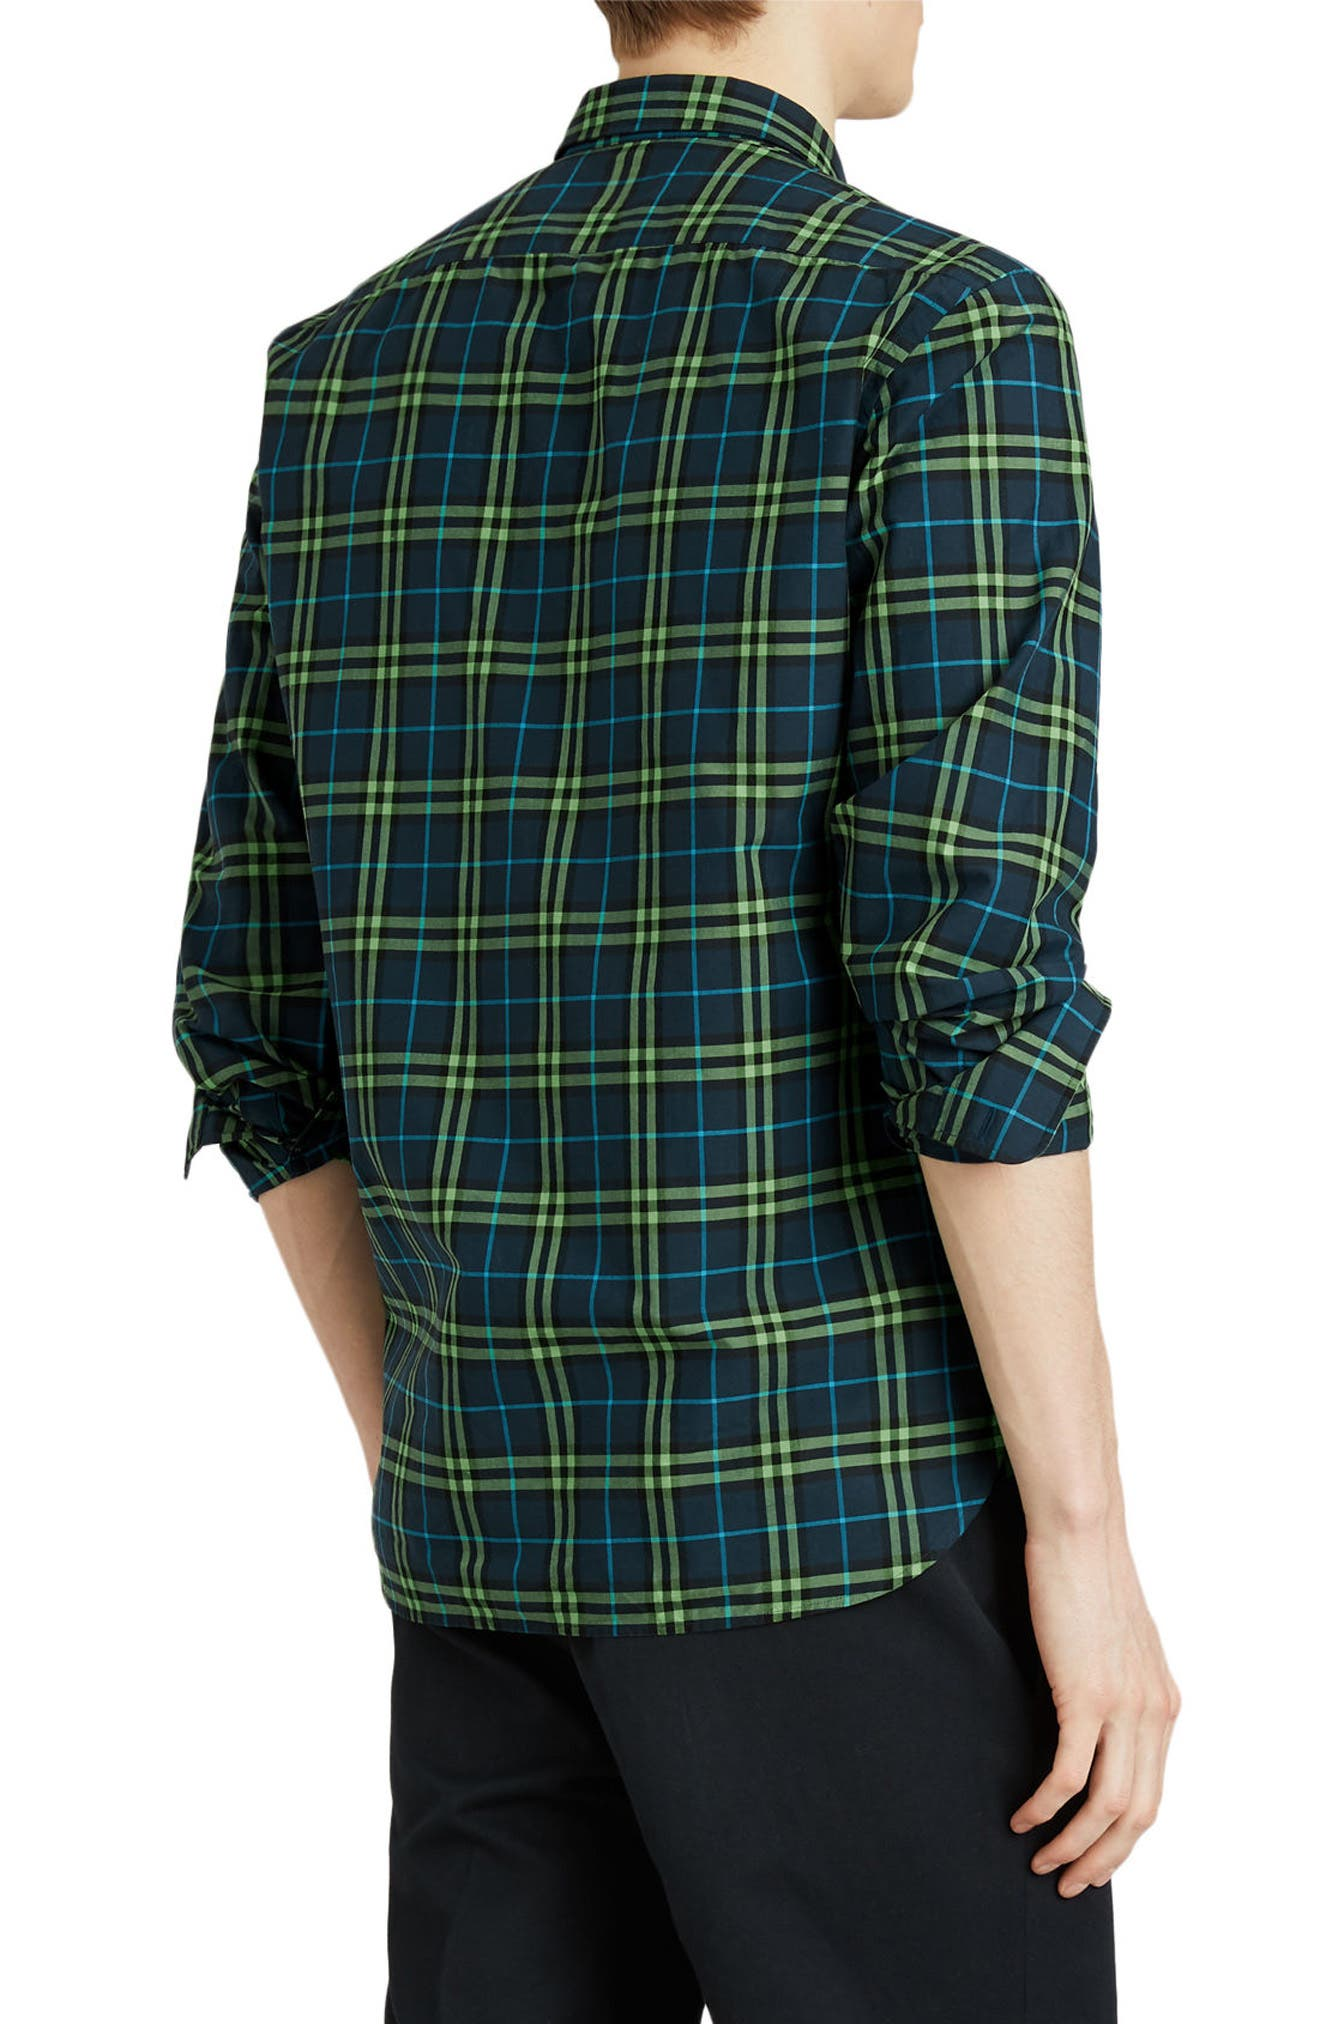 BURBERRY,                             Alexander Woven Check Sport Shirt,                             Alternate thumbnail 4, color,                             400